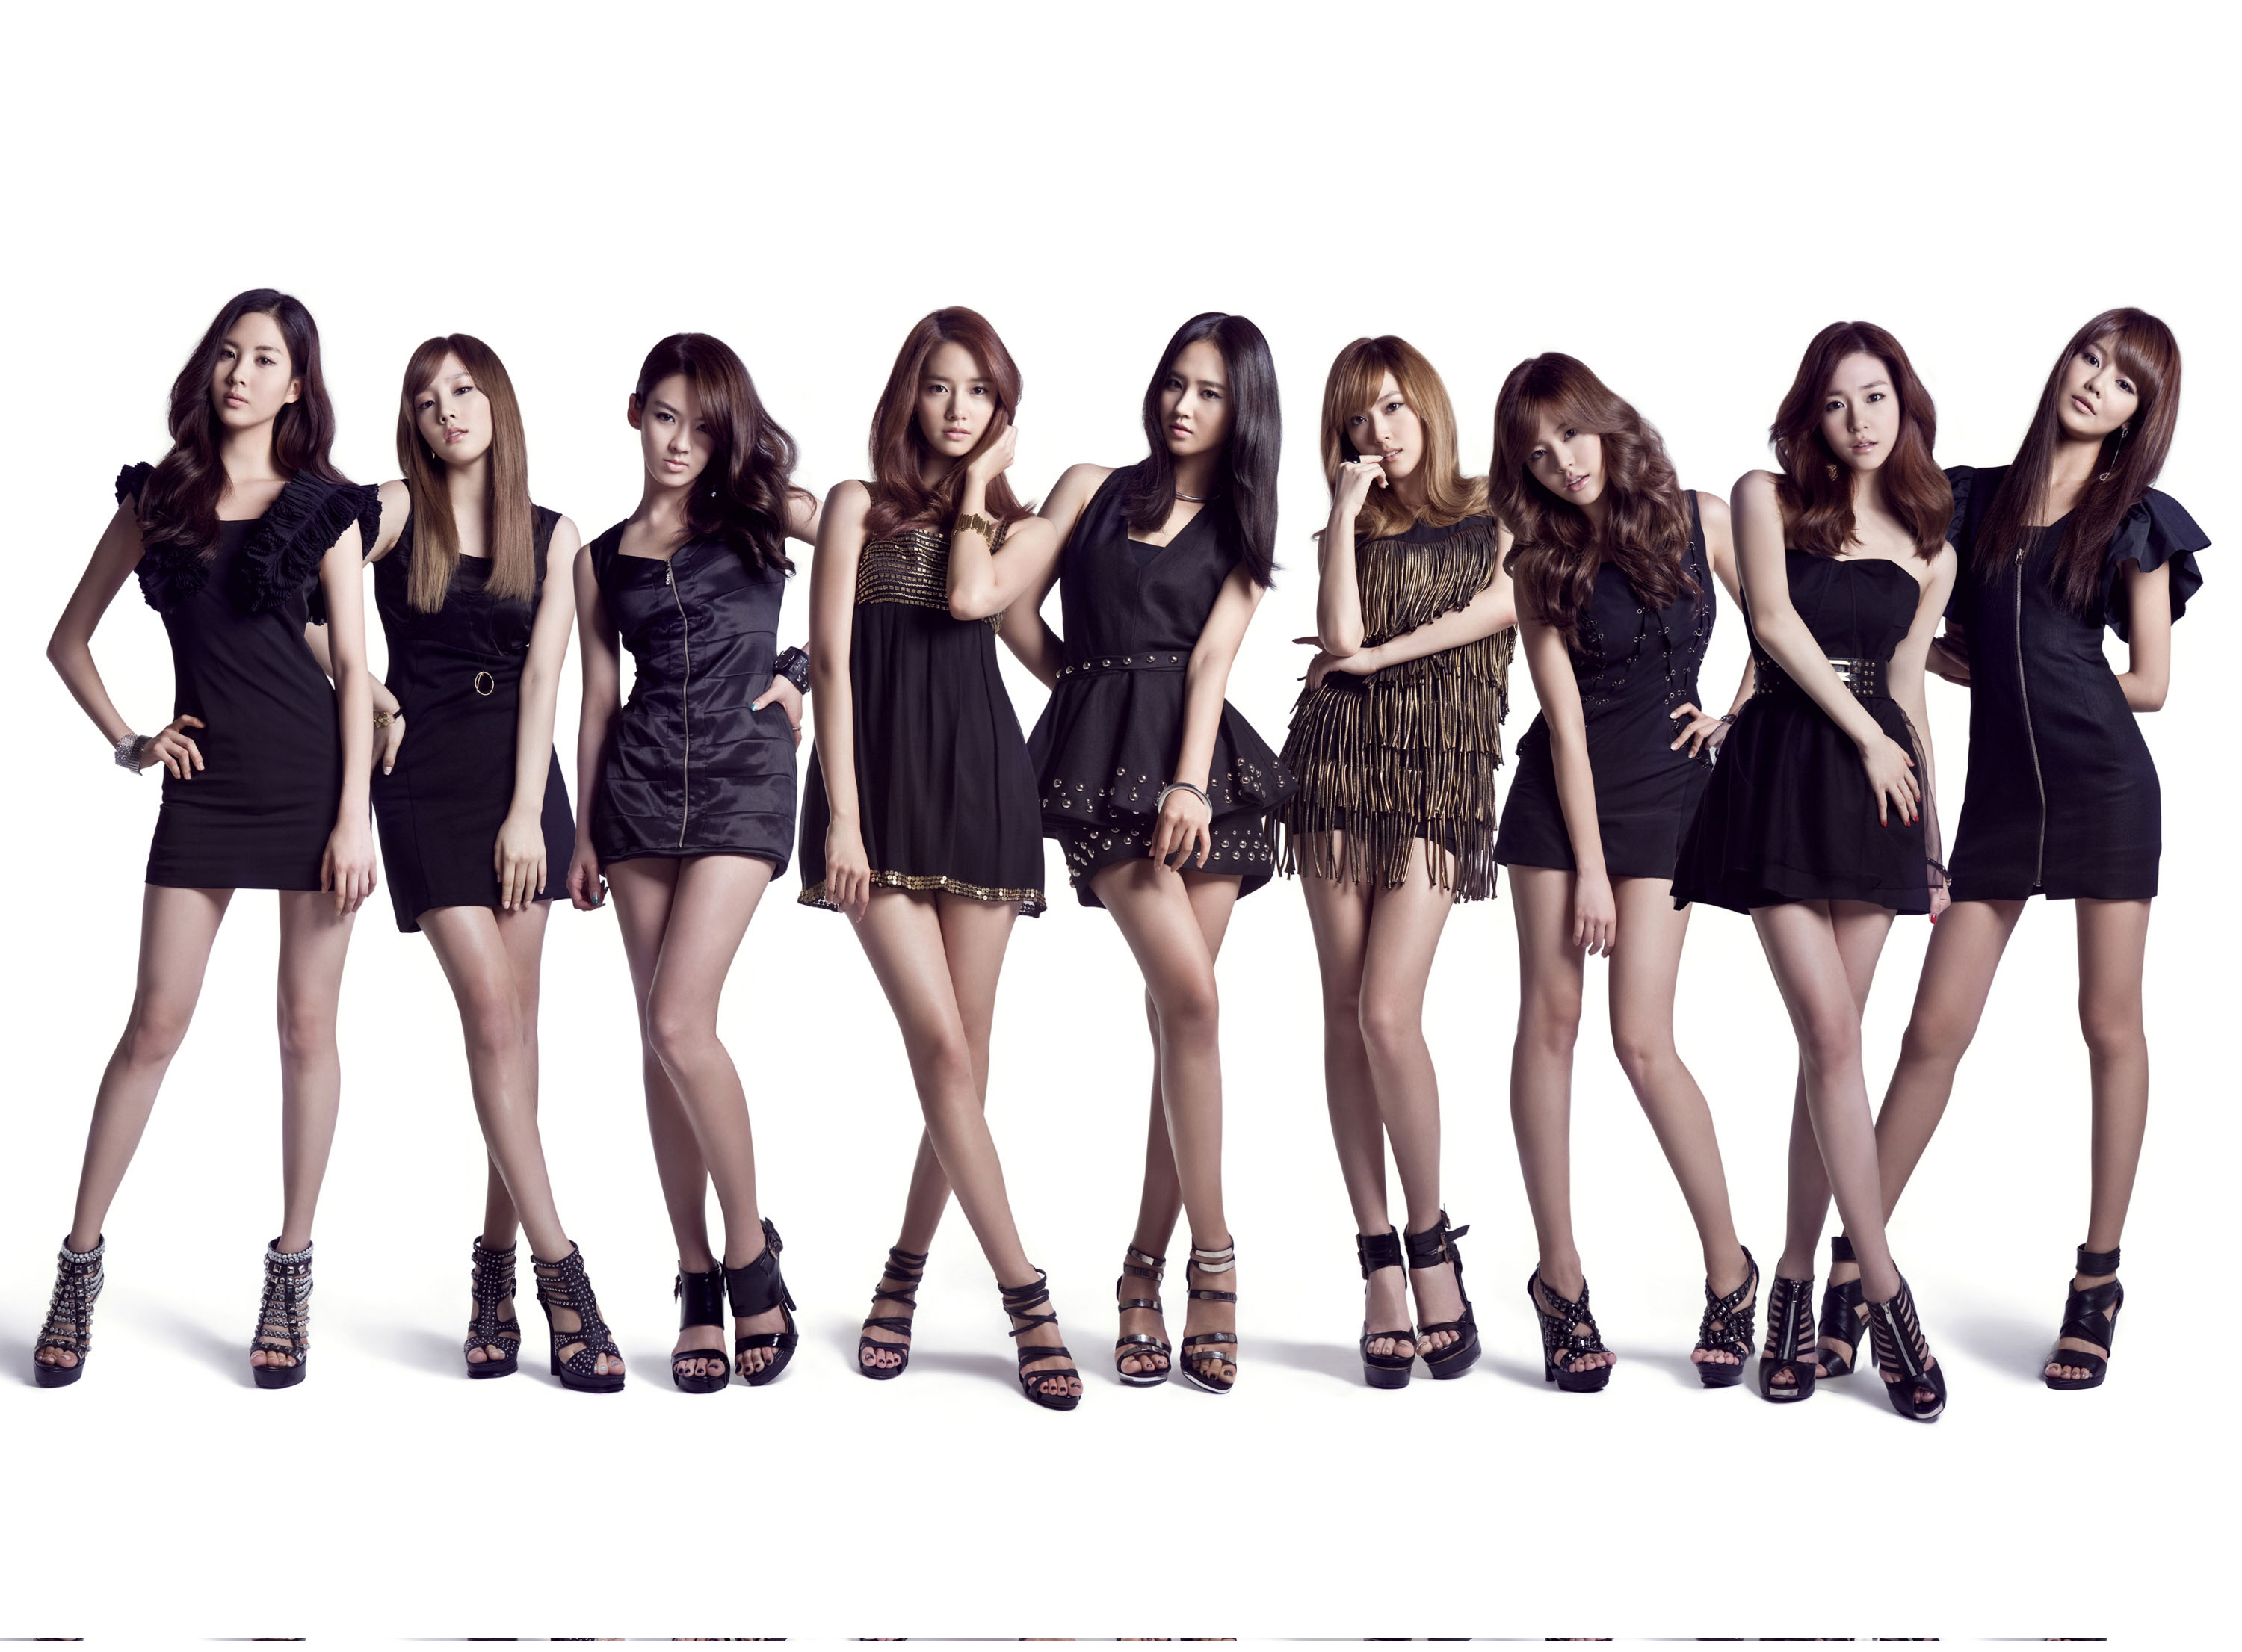 238 SNSD HD Wallpapers